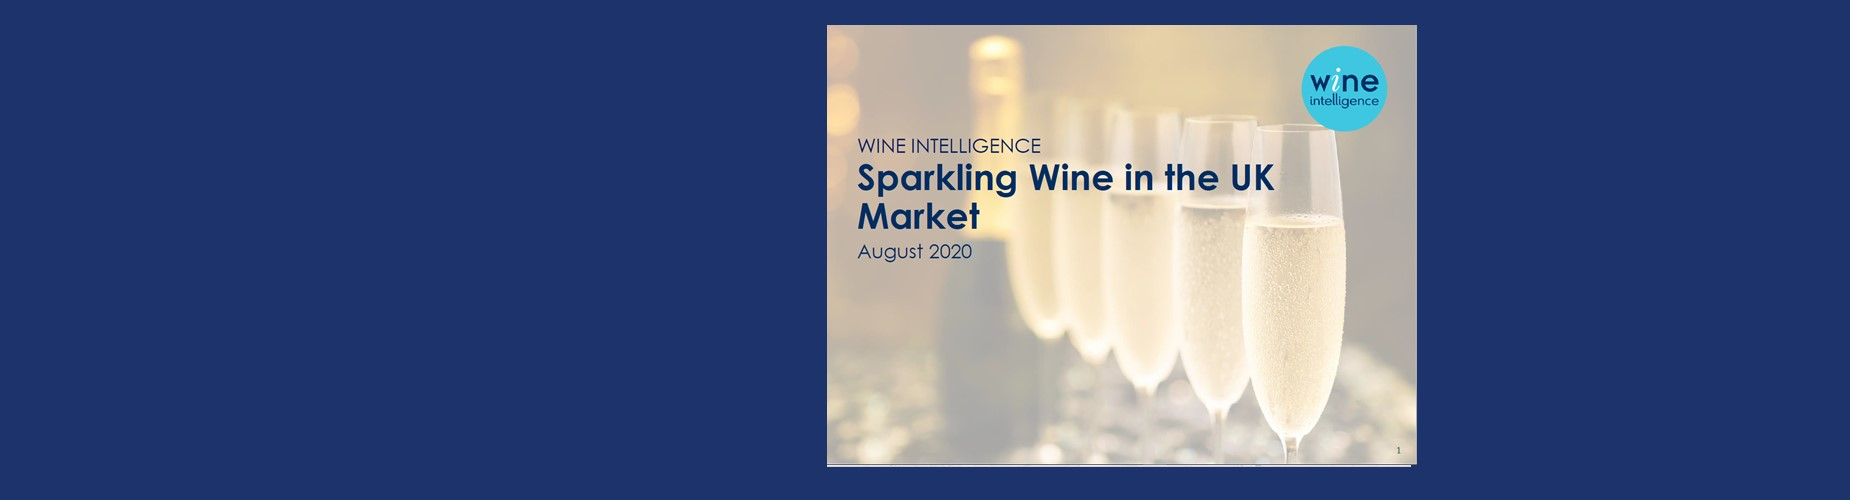 uk sparkling 2020 - About reports shop